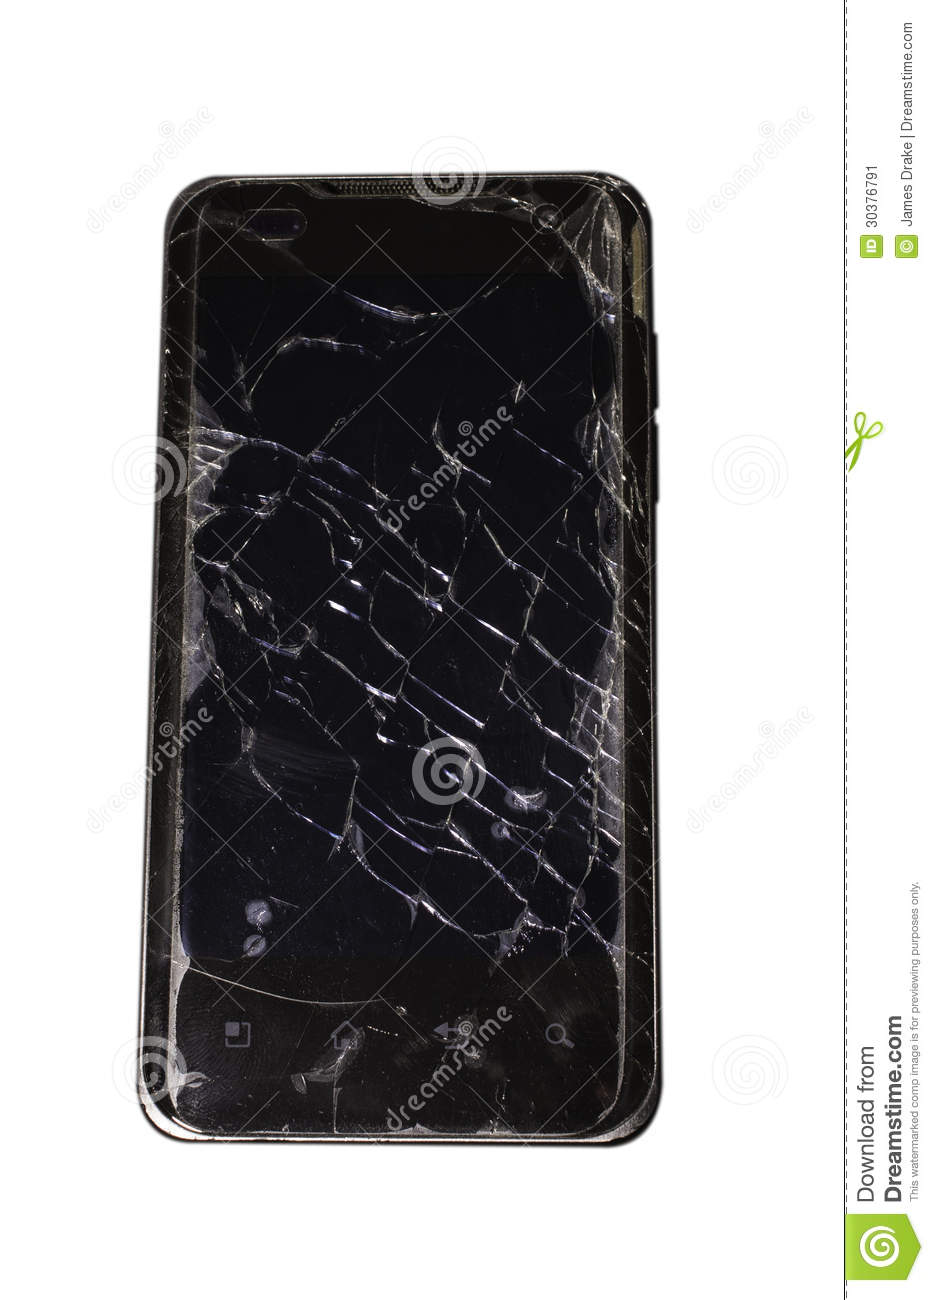 how to fix a cracked phone touch screen